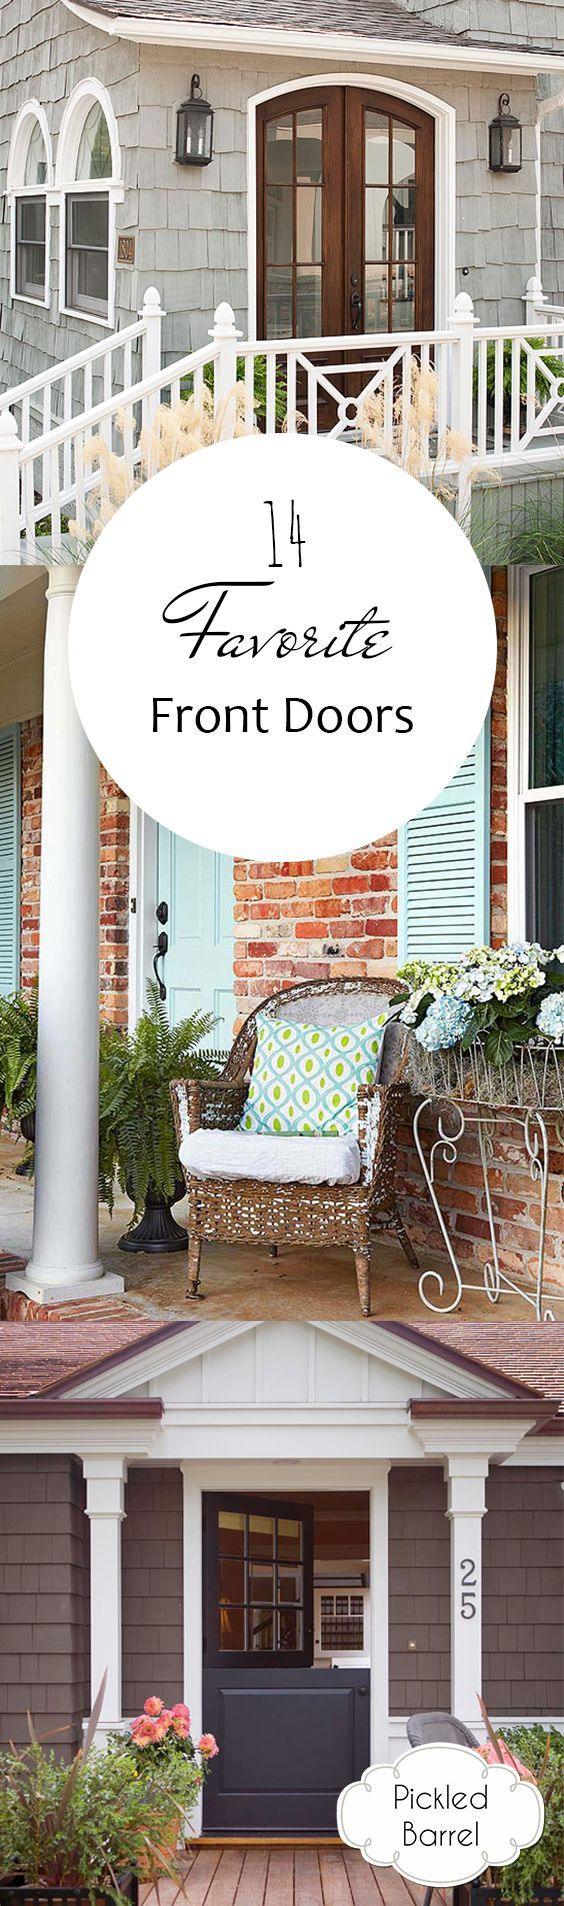 57 best Curb Appeal images on Pinterest | Pots, Backyard and ...